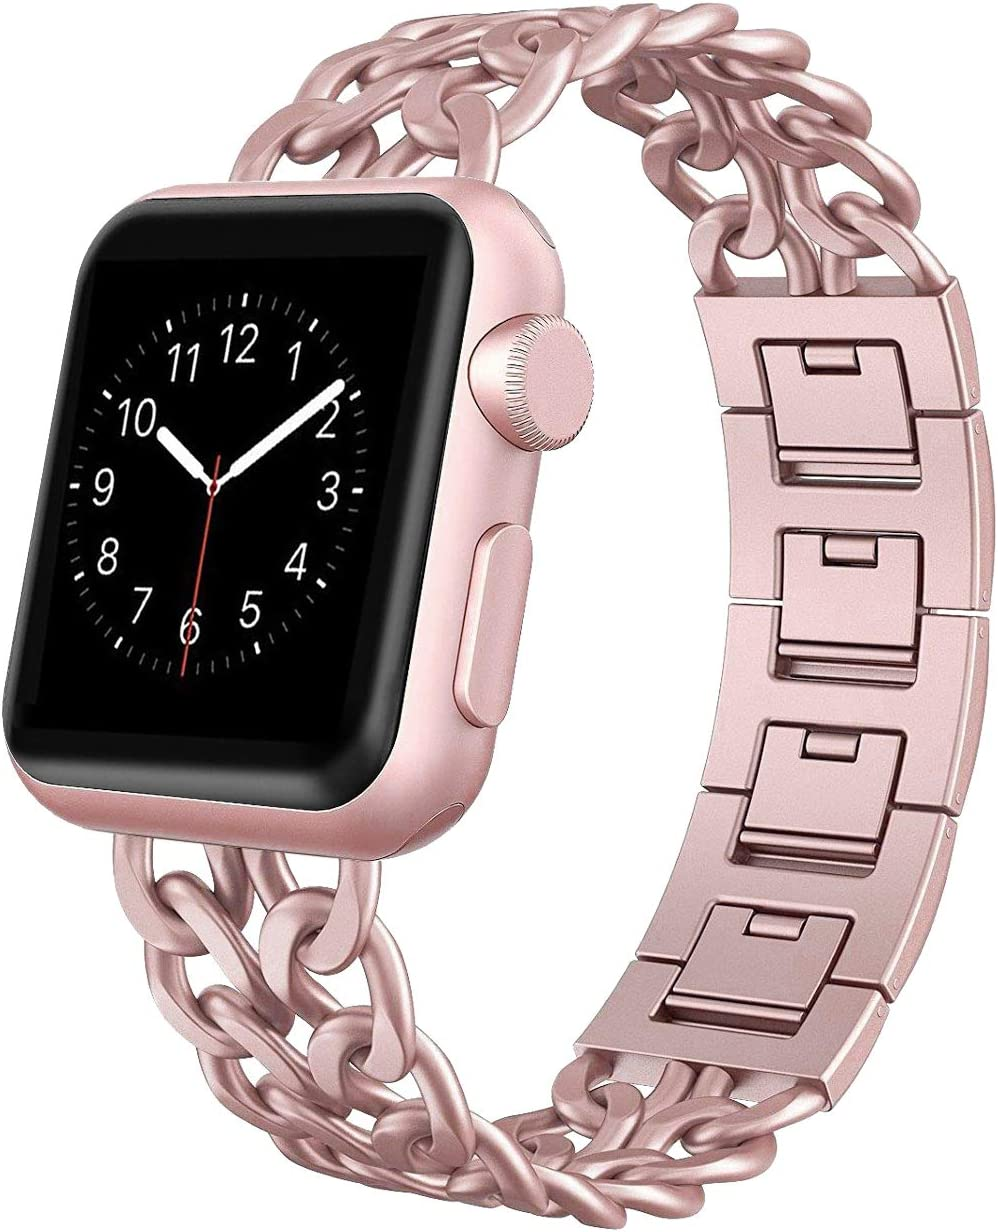 AmzAokay Replacement bands Compatible for Apple Watch 38mm 42mm Stainless Steel Metal Cowboy Chain Strap Wrist Band for Apple Watch 40mm 44mm Series 5 4 3 2 1 Sport and Edition (Rose Gold, 38mm/40mm)